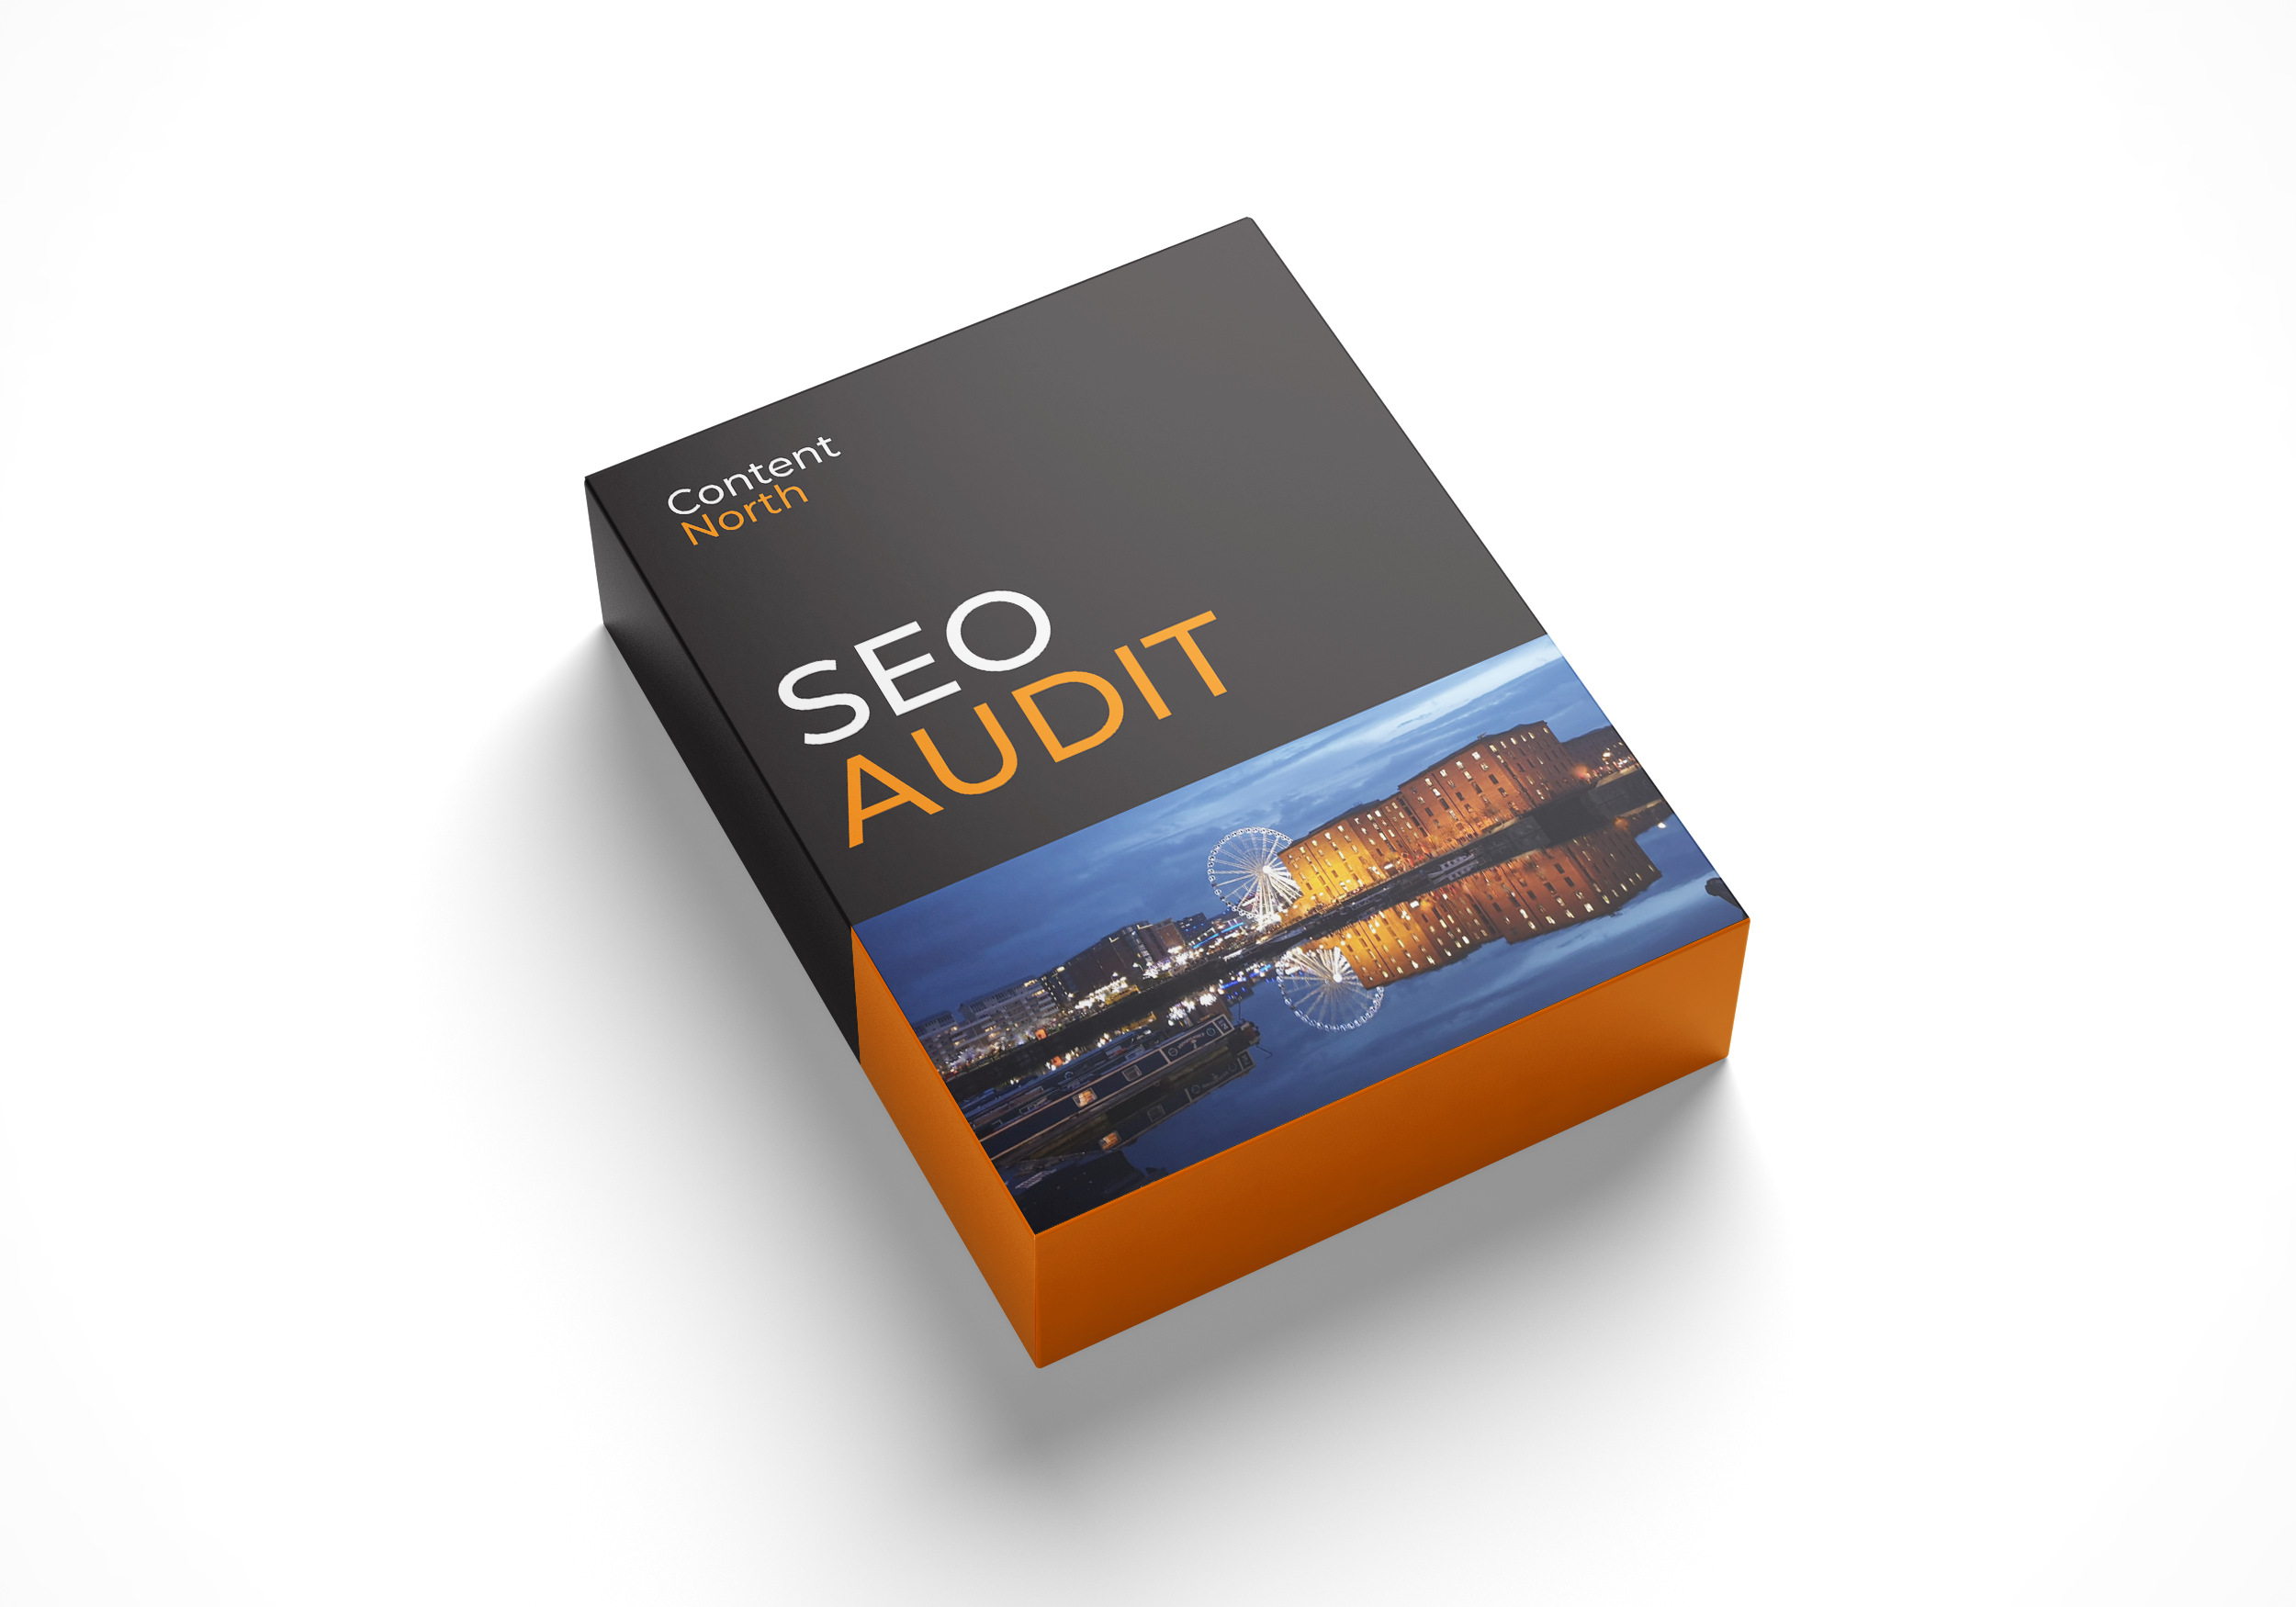 SEO audit boxed product